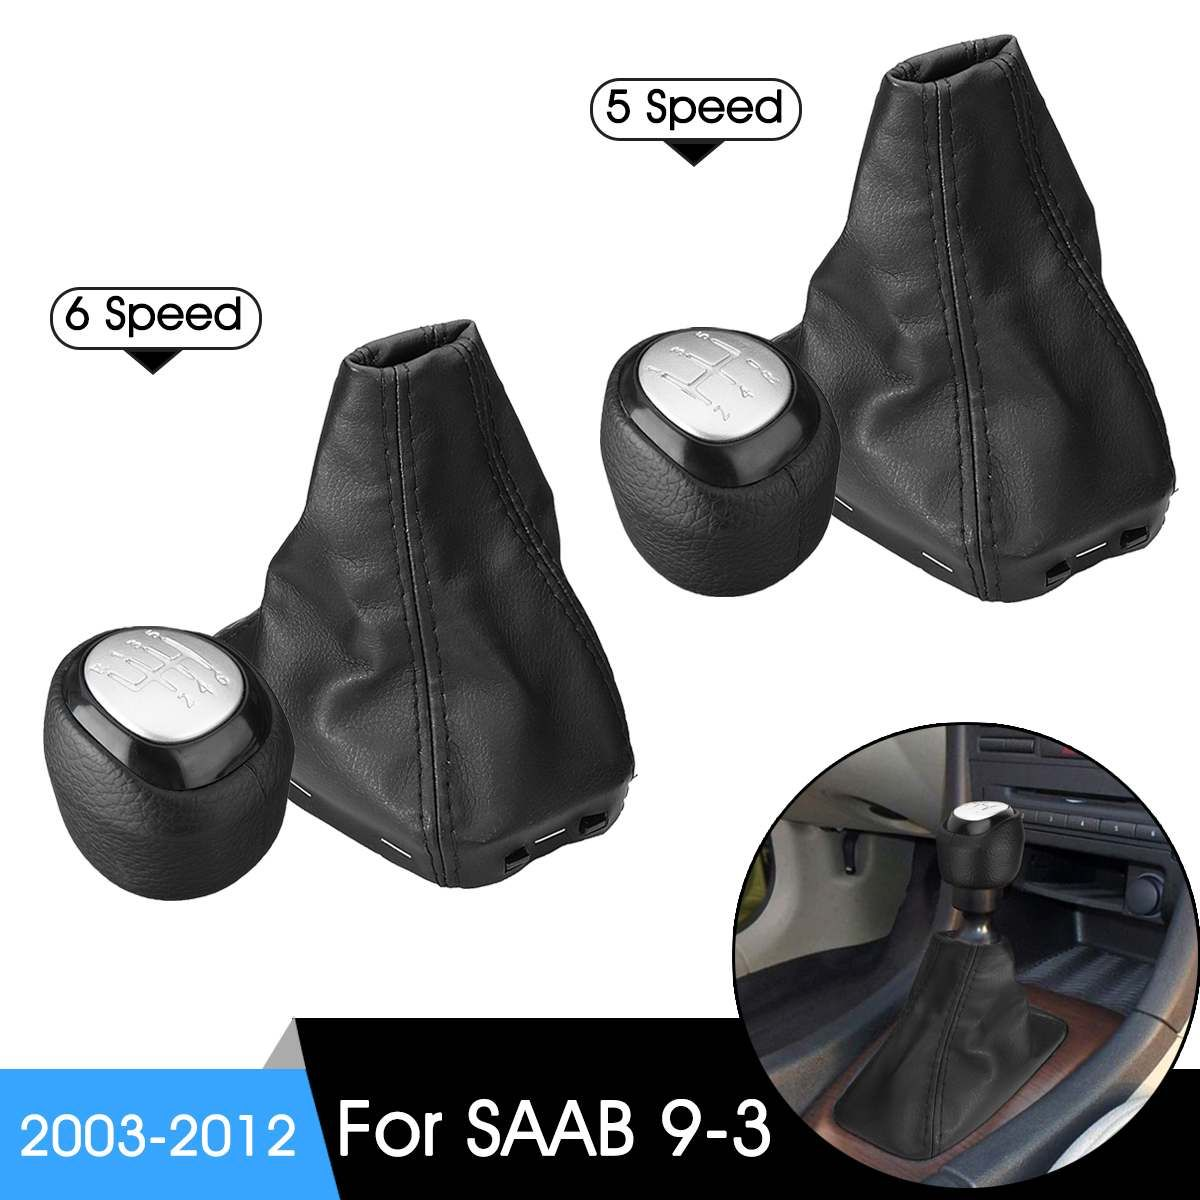 5/6 Speed Car Gear Shift Knob Shifter Lever Leather Gaiter Boot Cover For SAAB 9-3 2003-2012 Manual Transmission